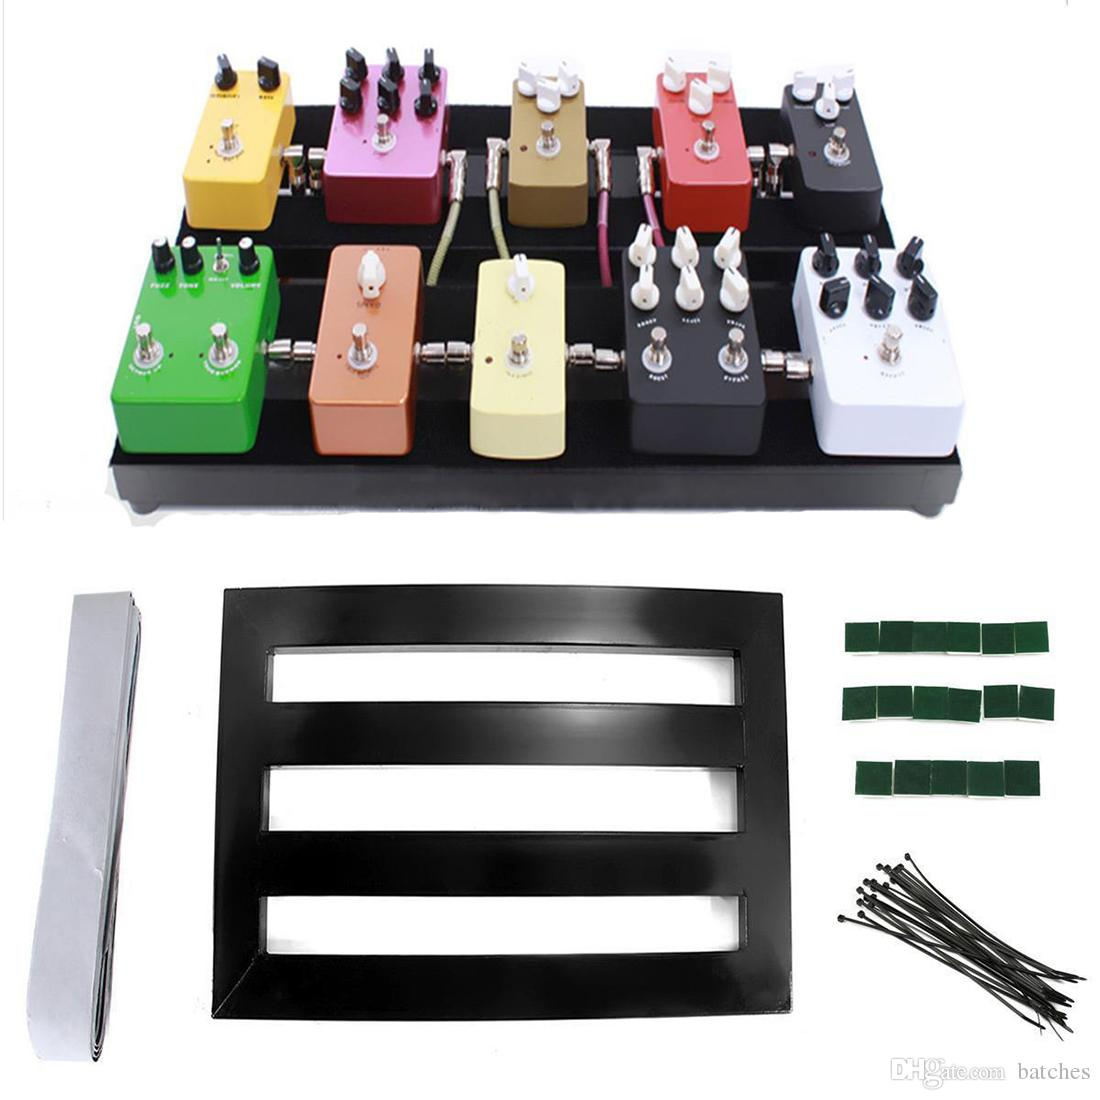 Guitar Effect Pedalboard Portable Effects Pedal Board With Adhesive Backing Tape-MUSIC